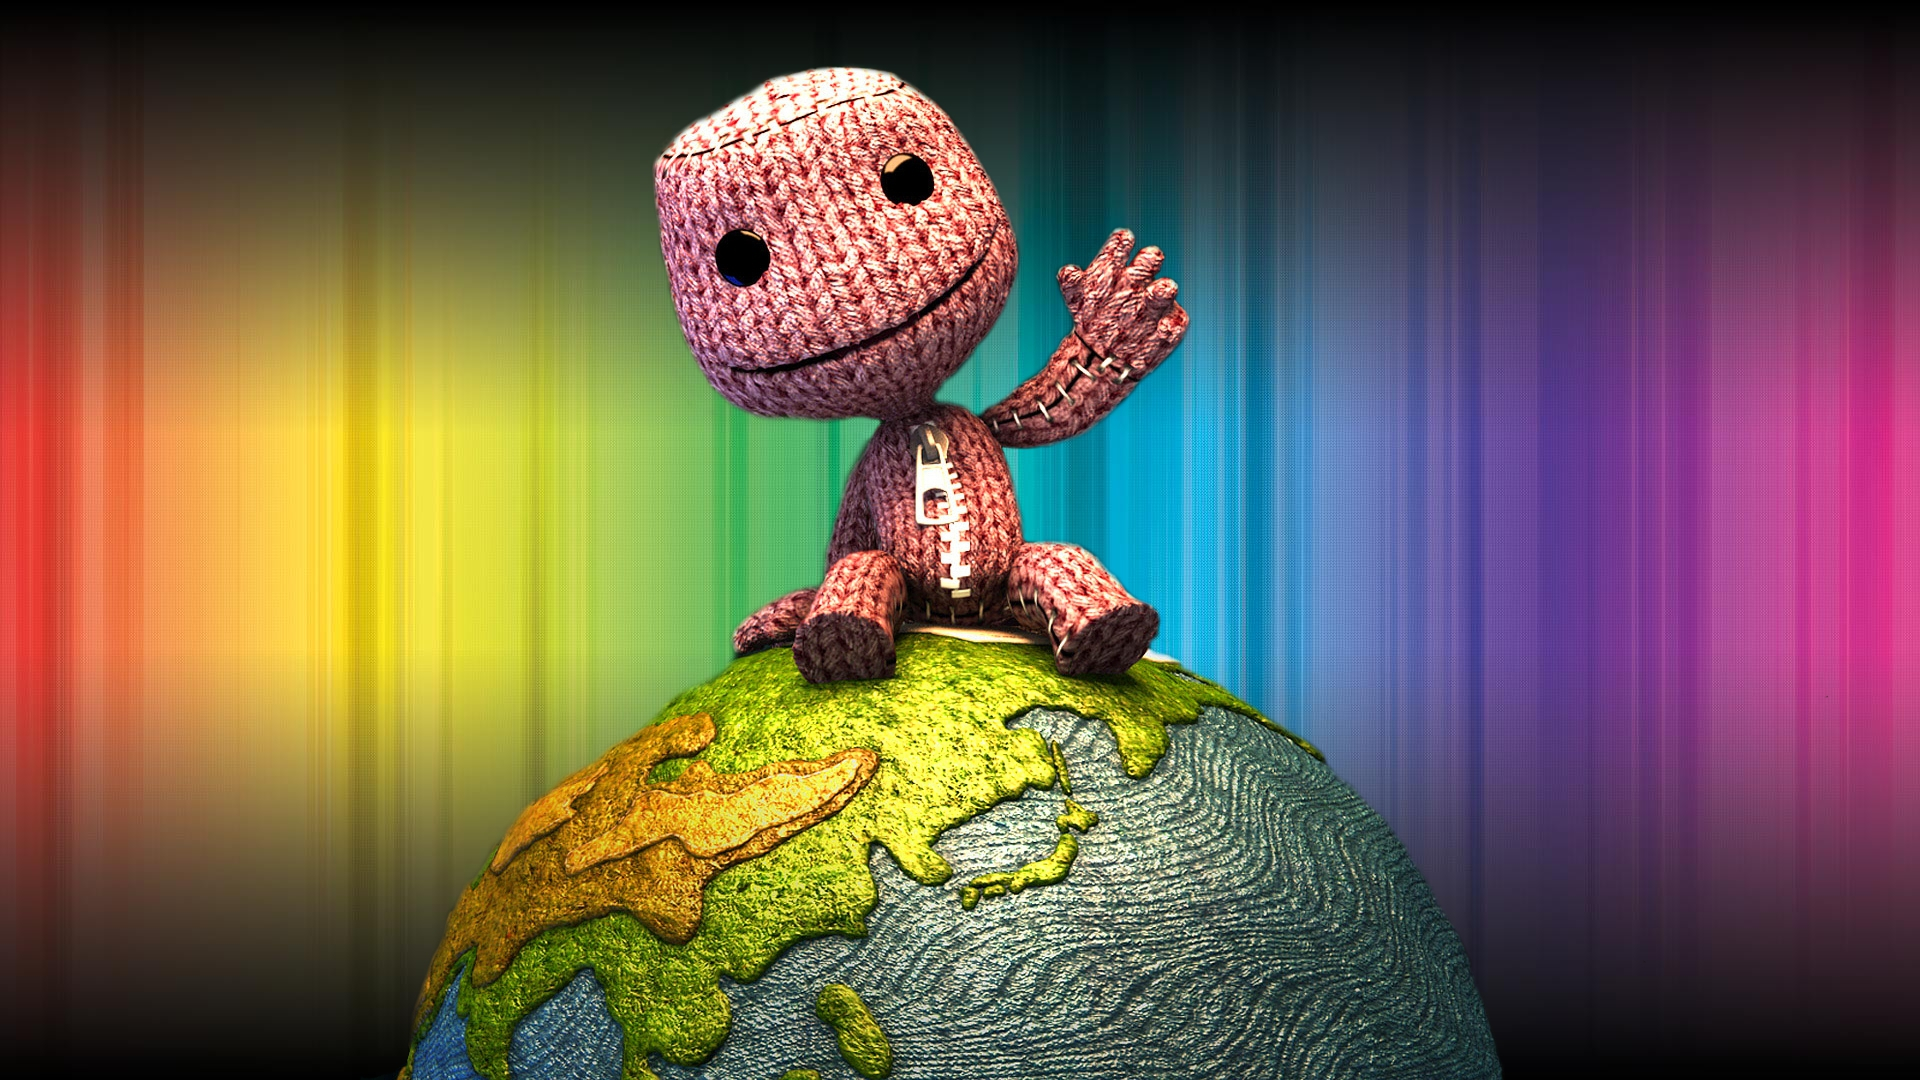 little big planet wallpaper hd wallpapersafari. Black Bedroom Furniture Sets. Home Design Ideas